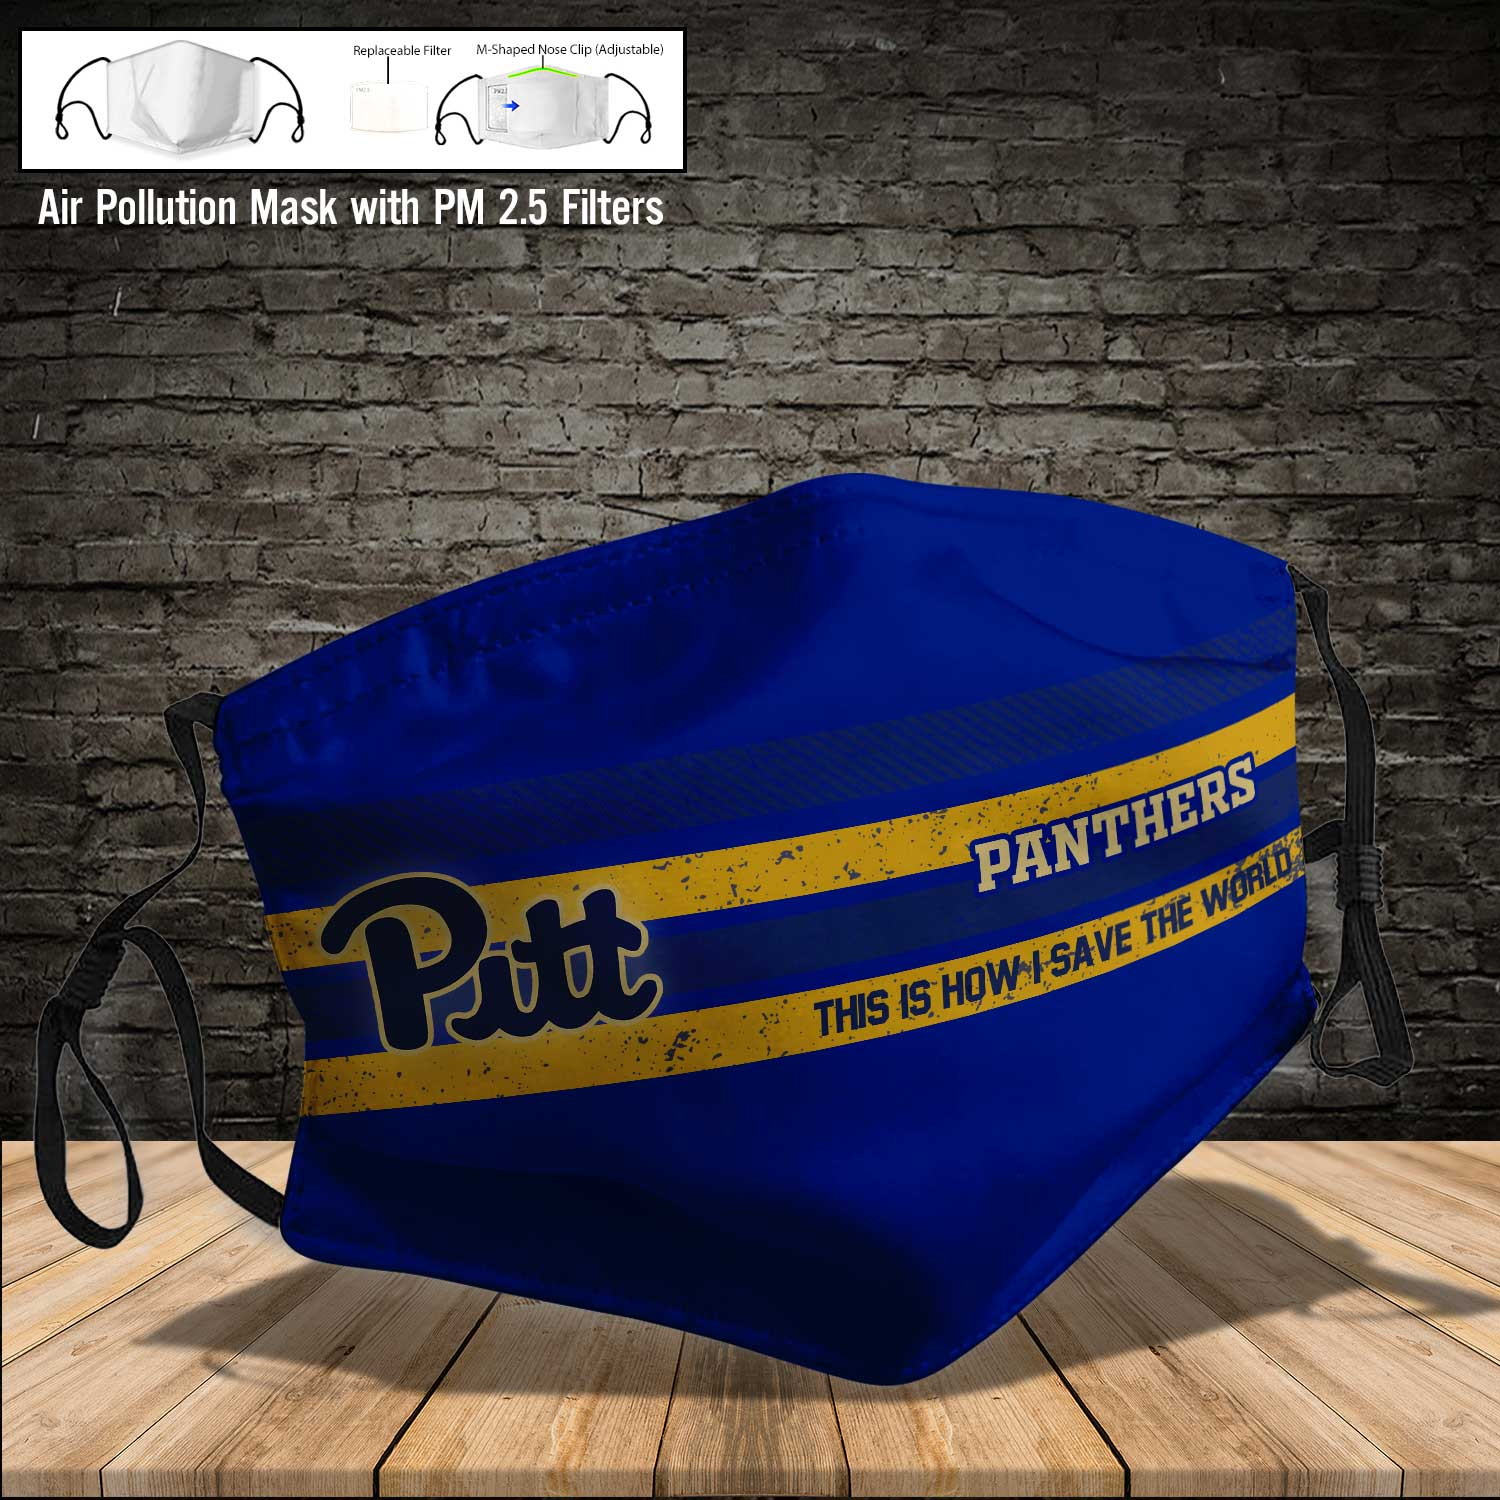 Pitt panthers this is how i save the world face mask 3